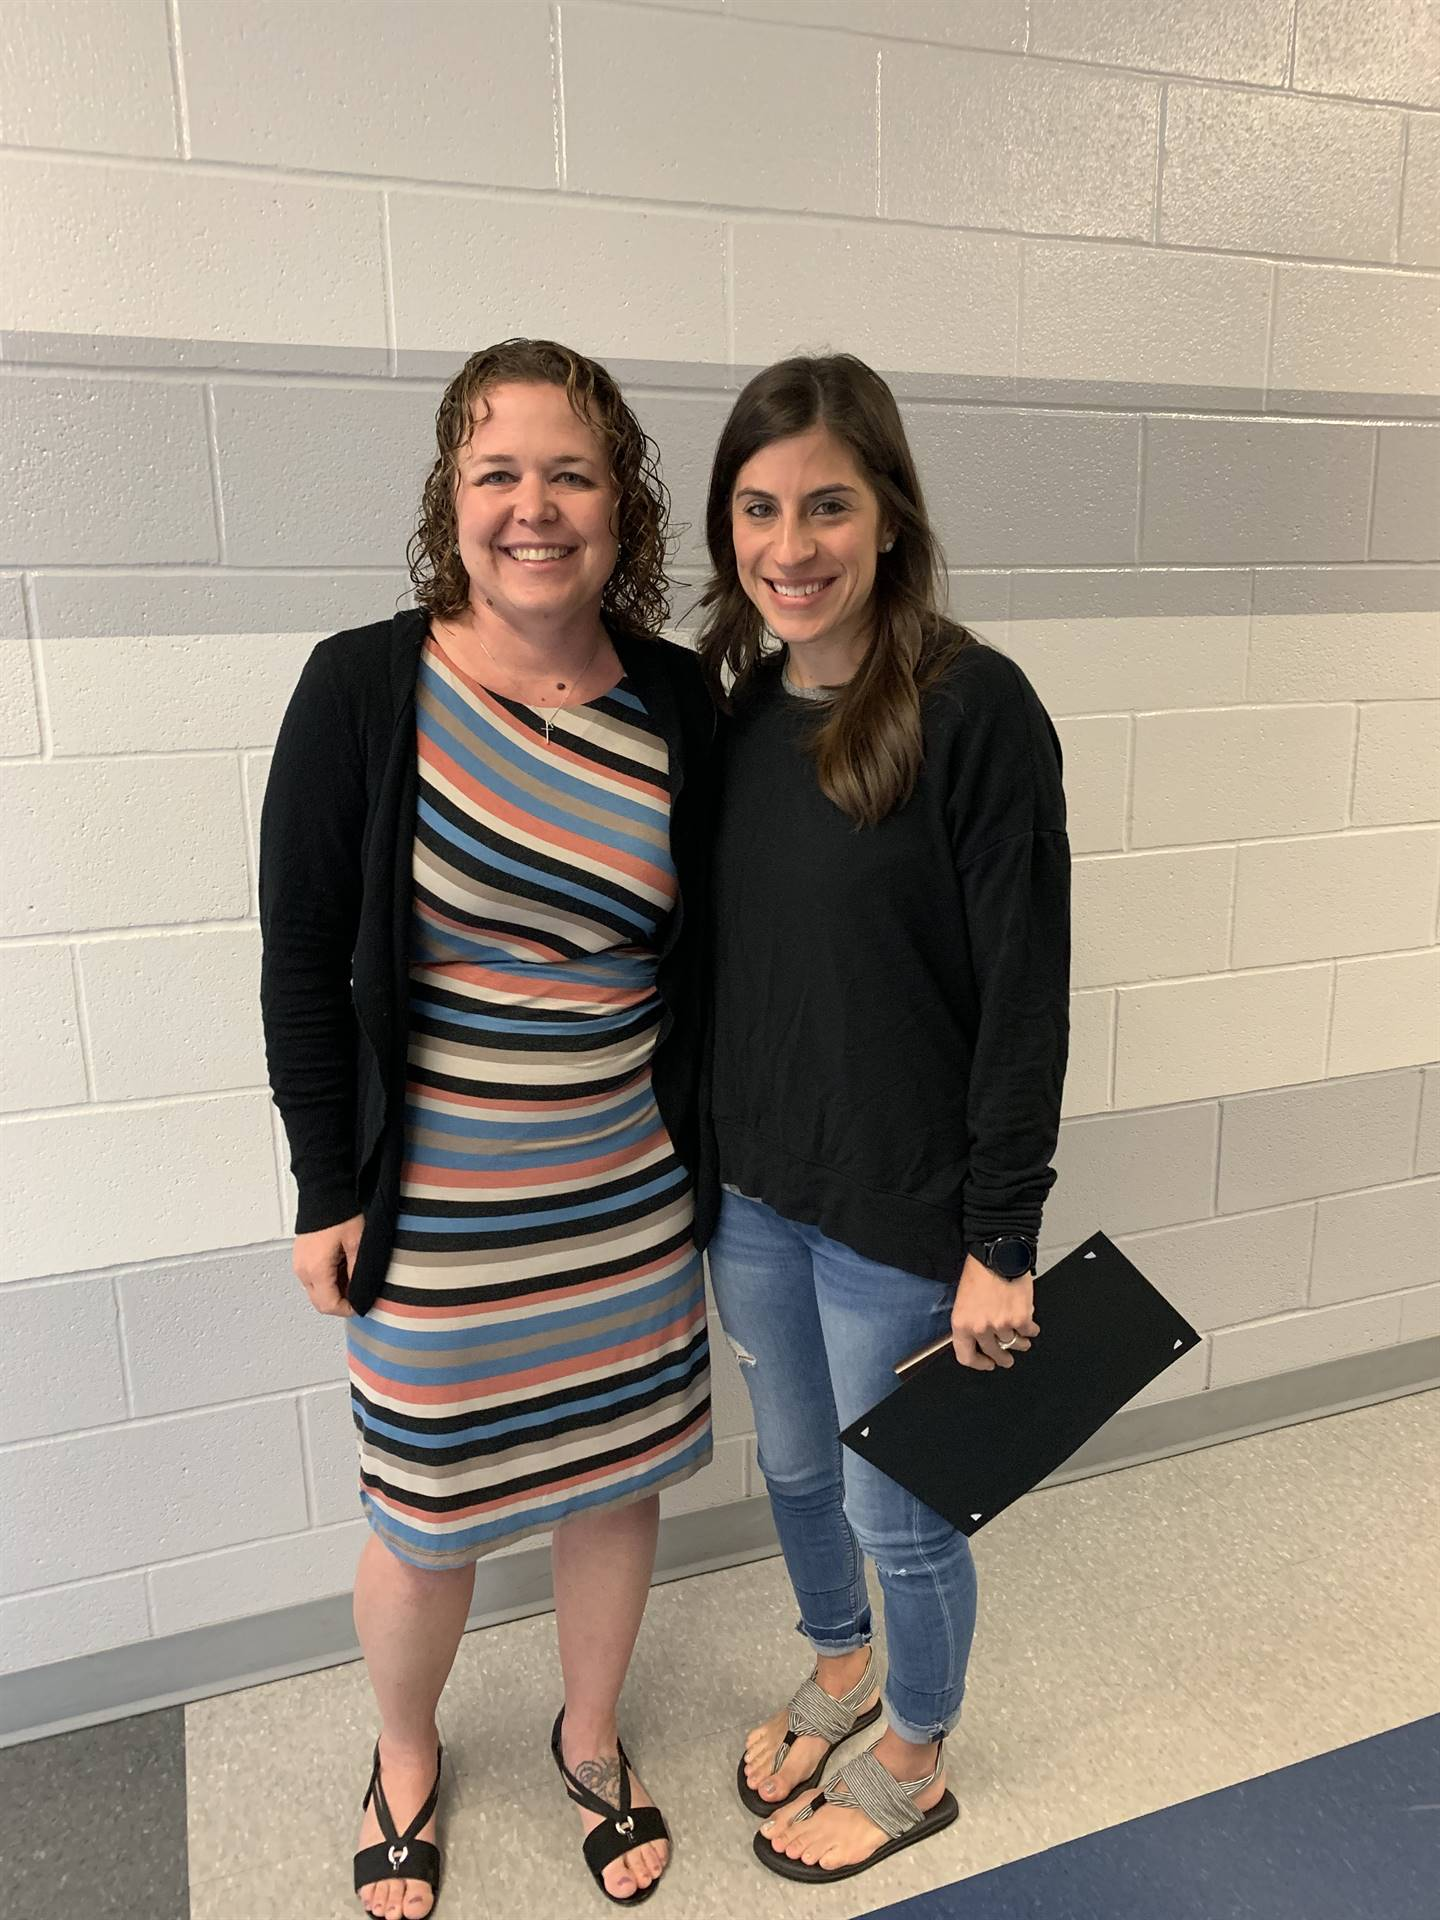 Bethany Shaw receiving Franklin B. Walter Outstanding Educator Award June 6, 2019